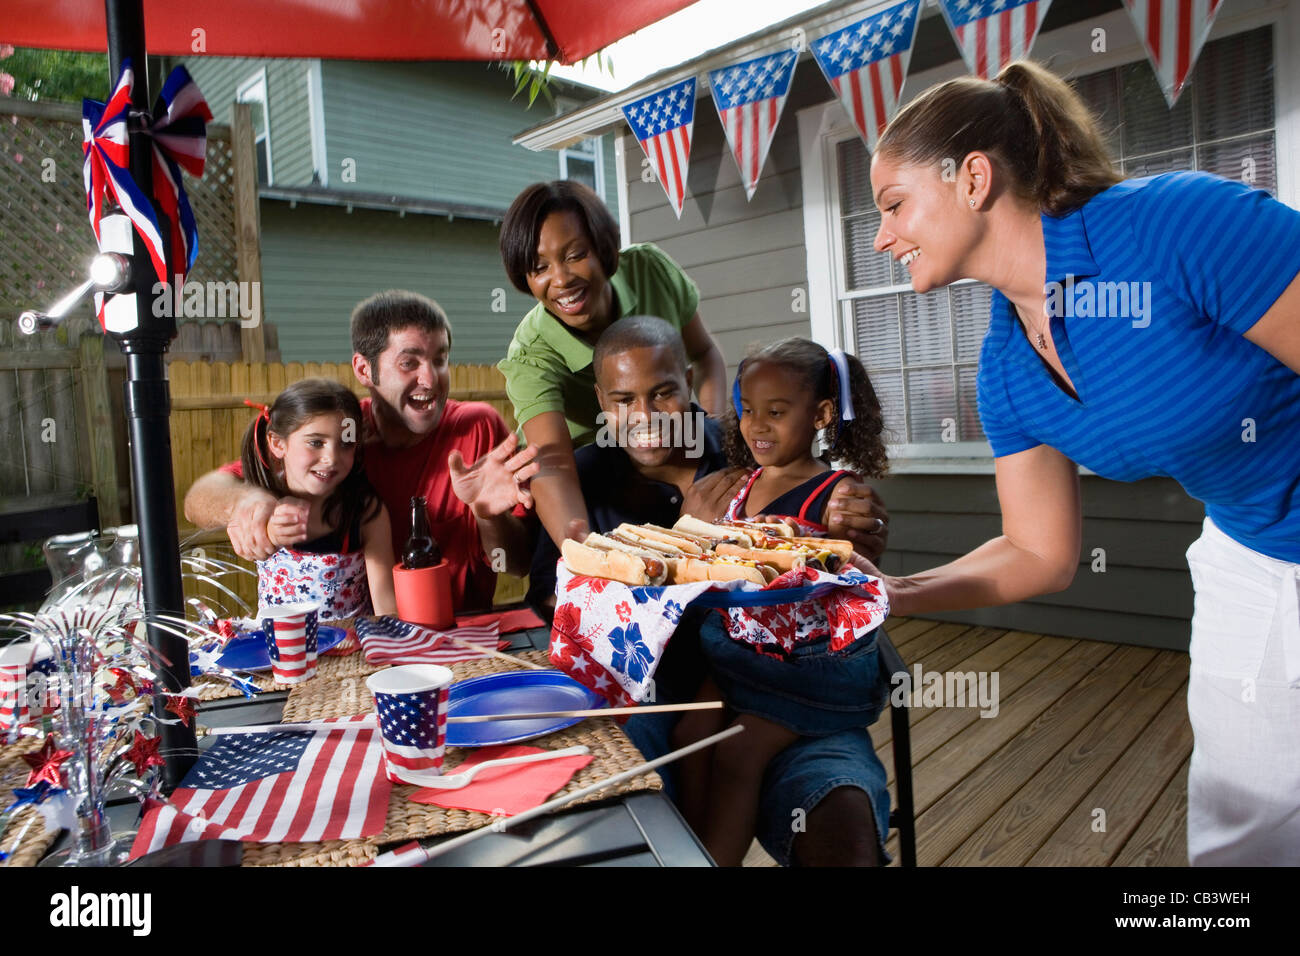 two families on backyard patio enjoying a cookout on the 4th of